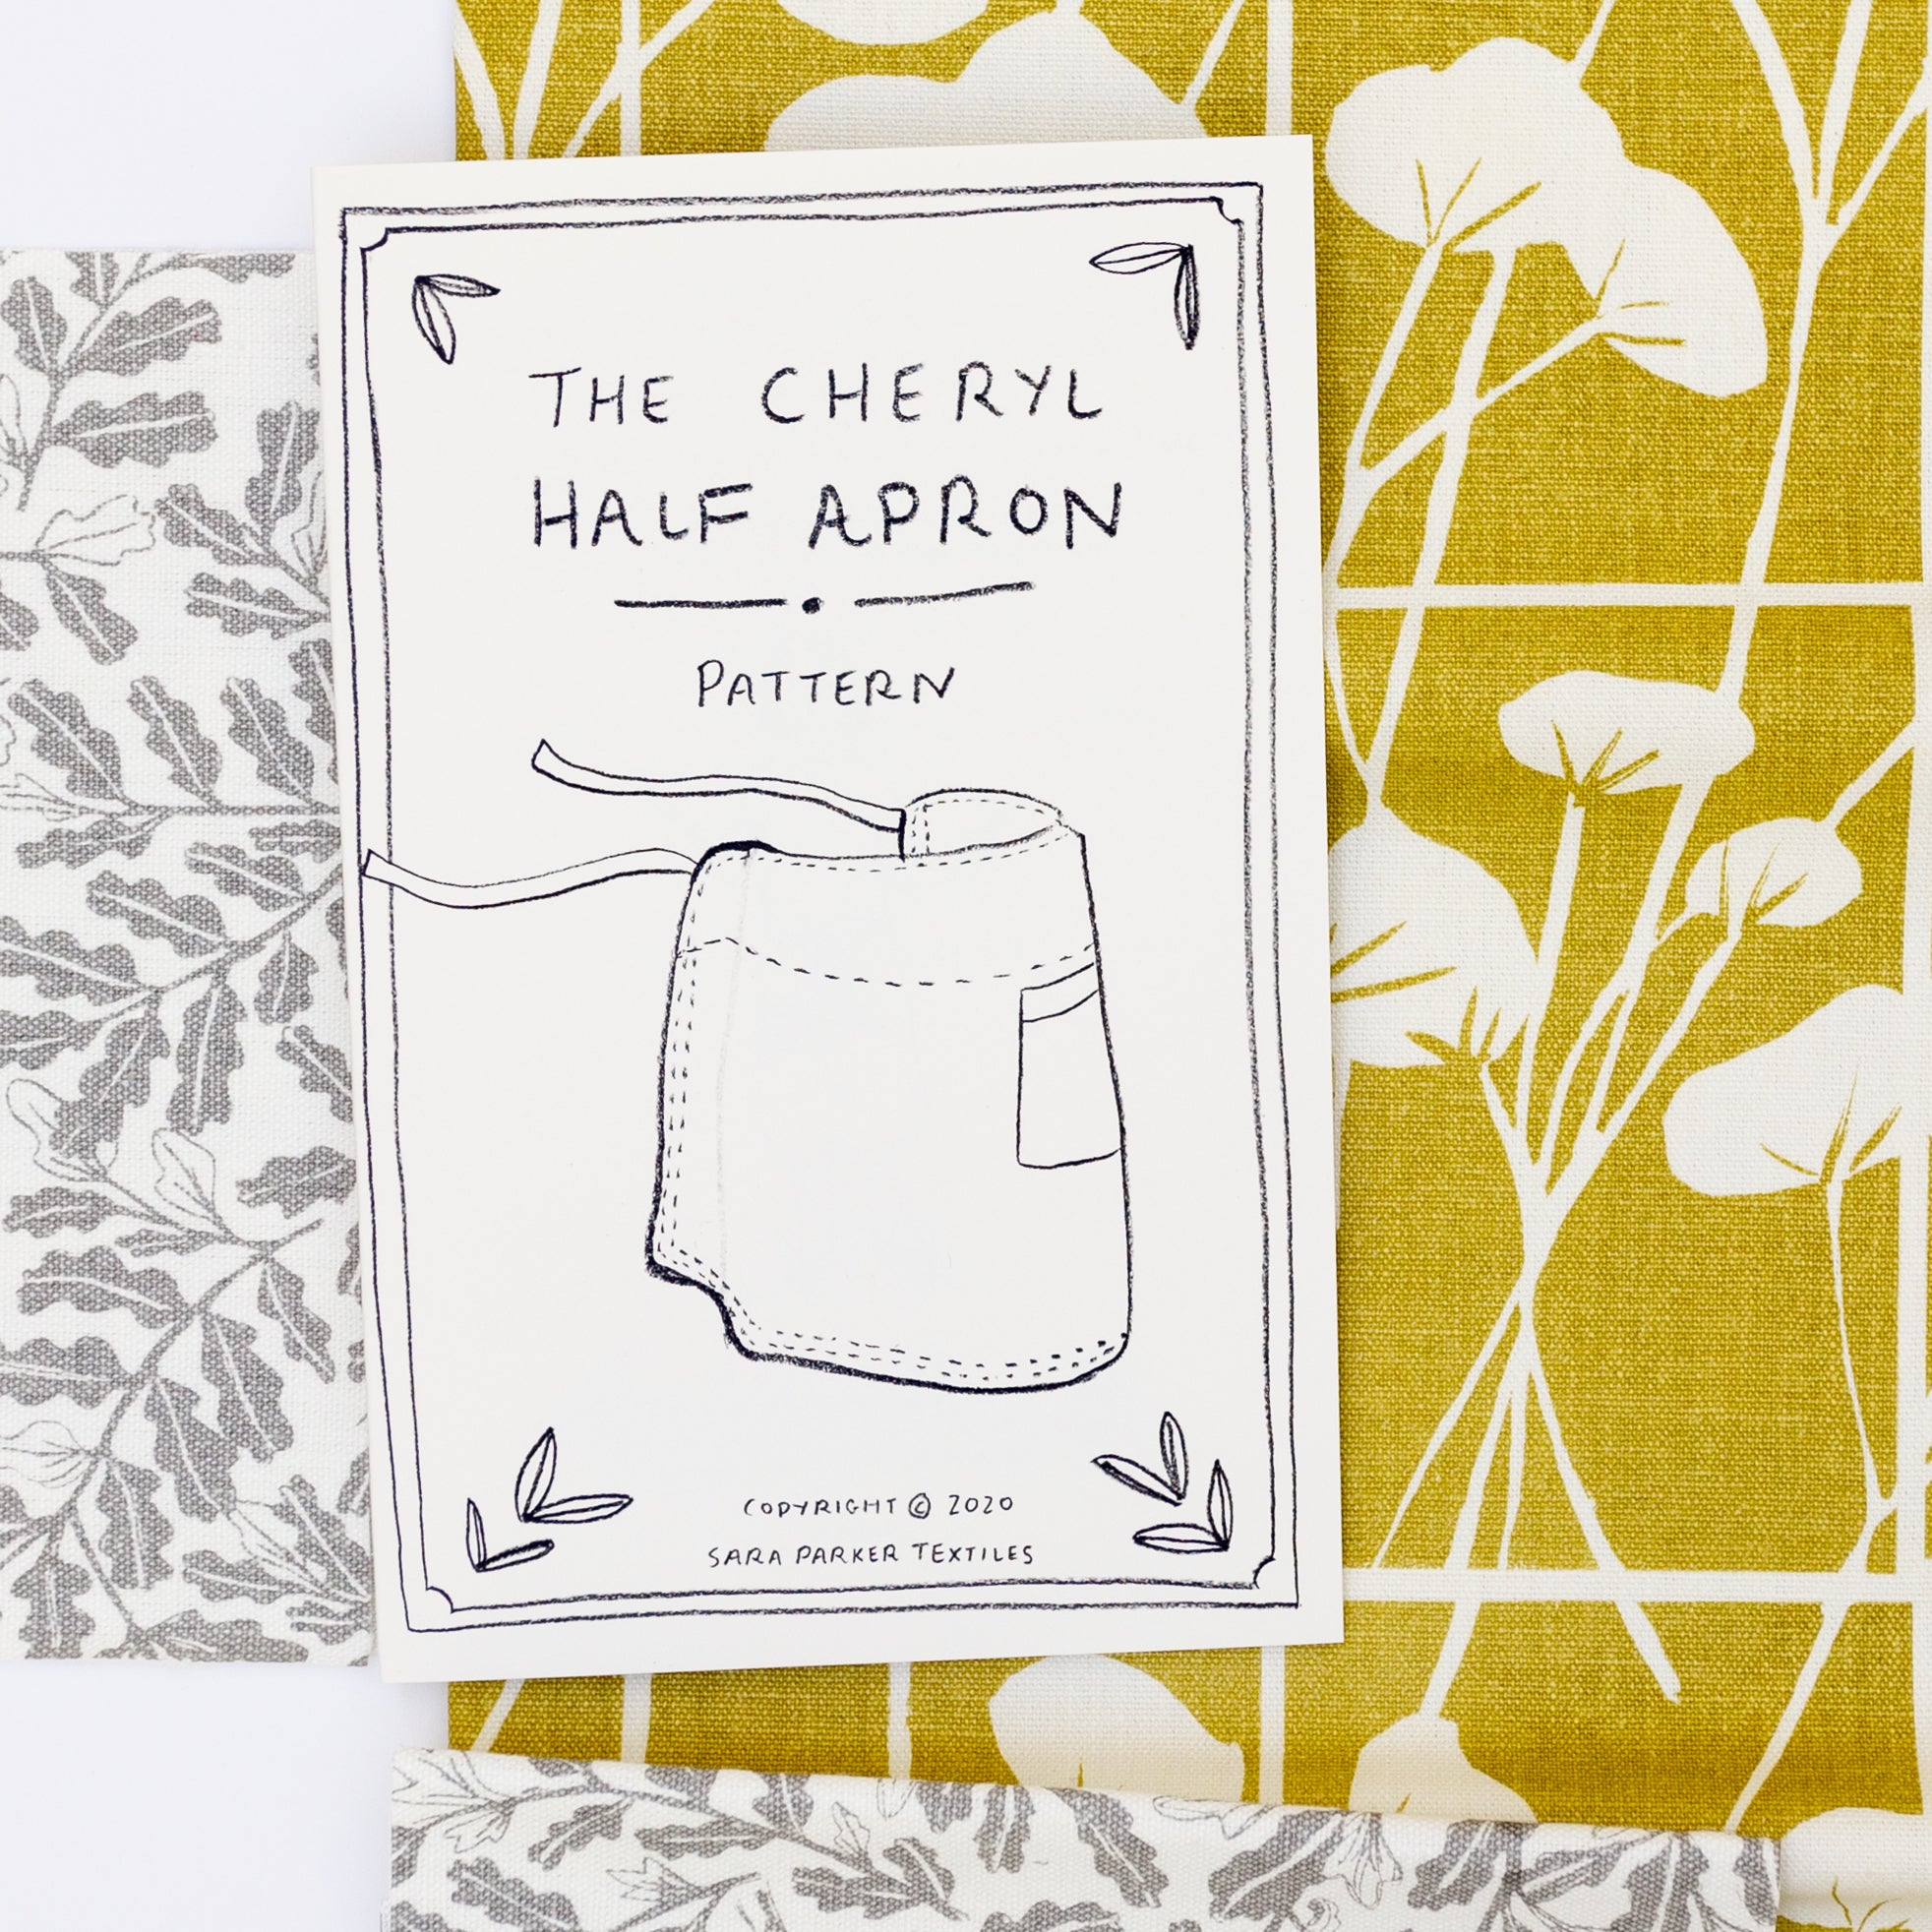 Printed apron pattern with pre-cut screen printed fabric